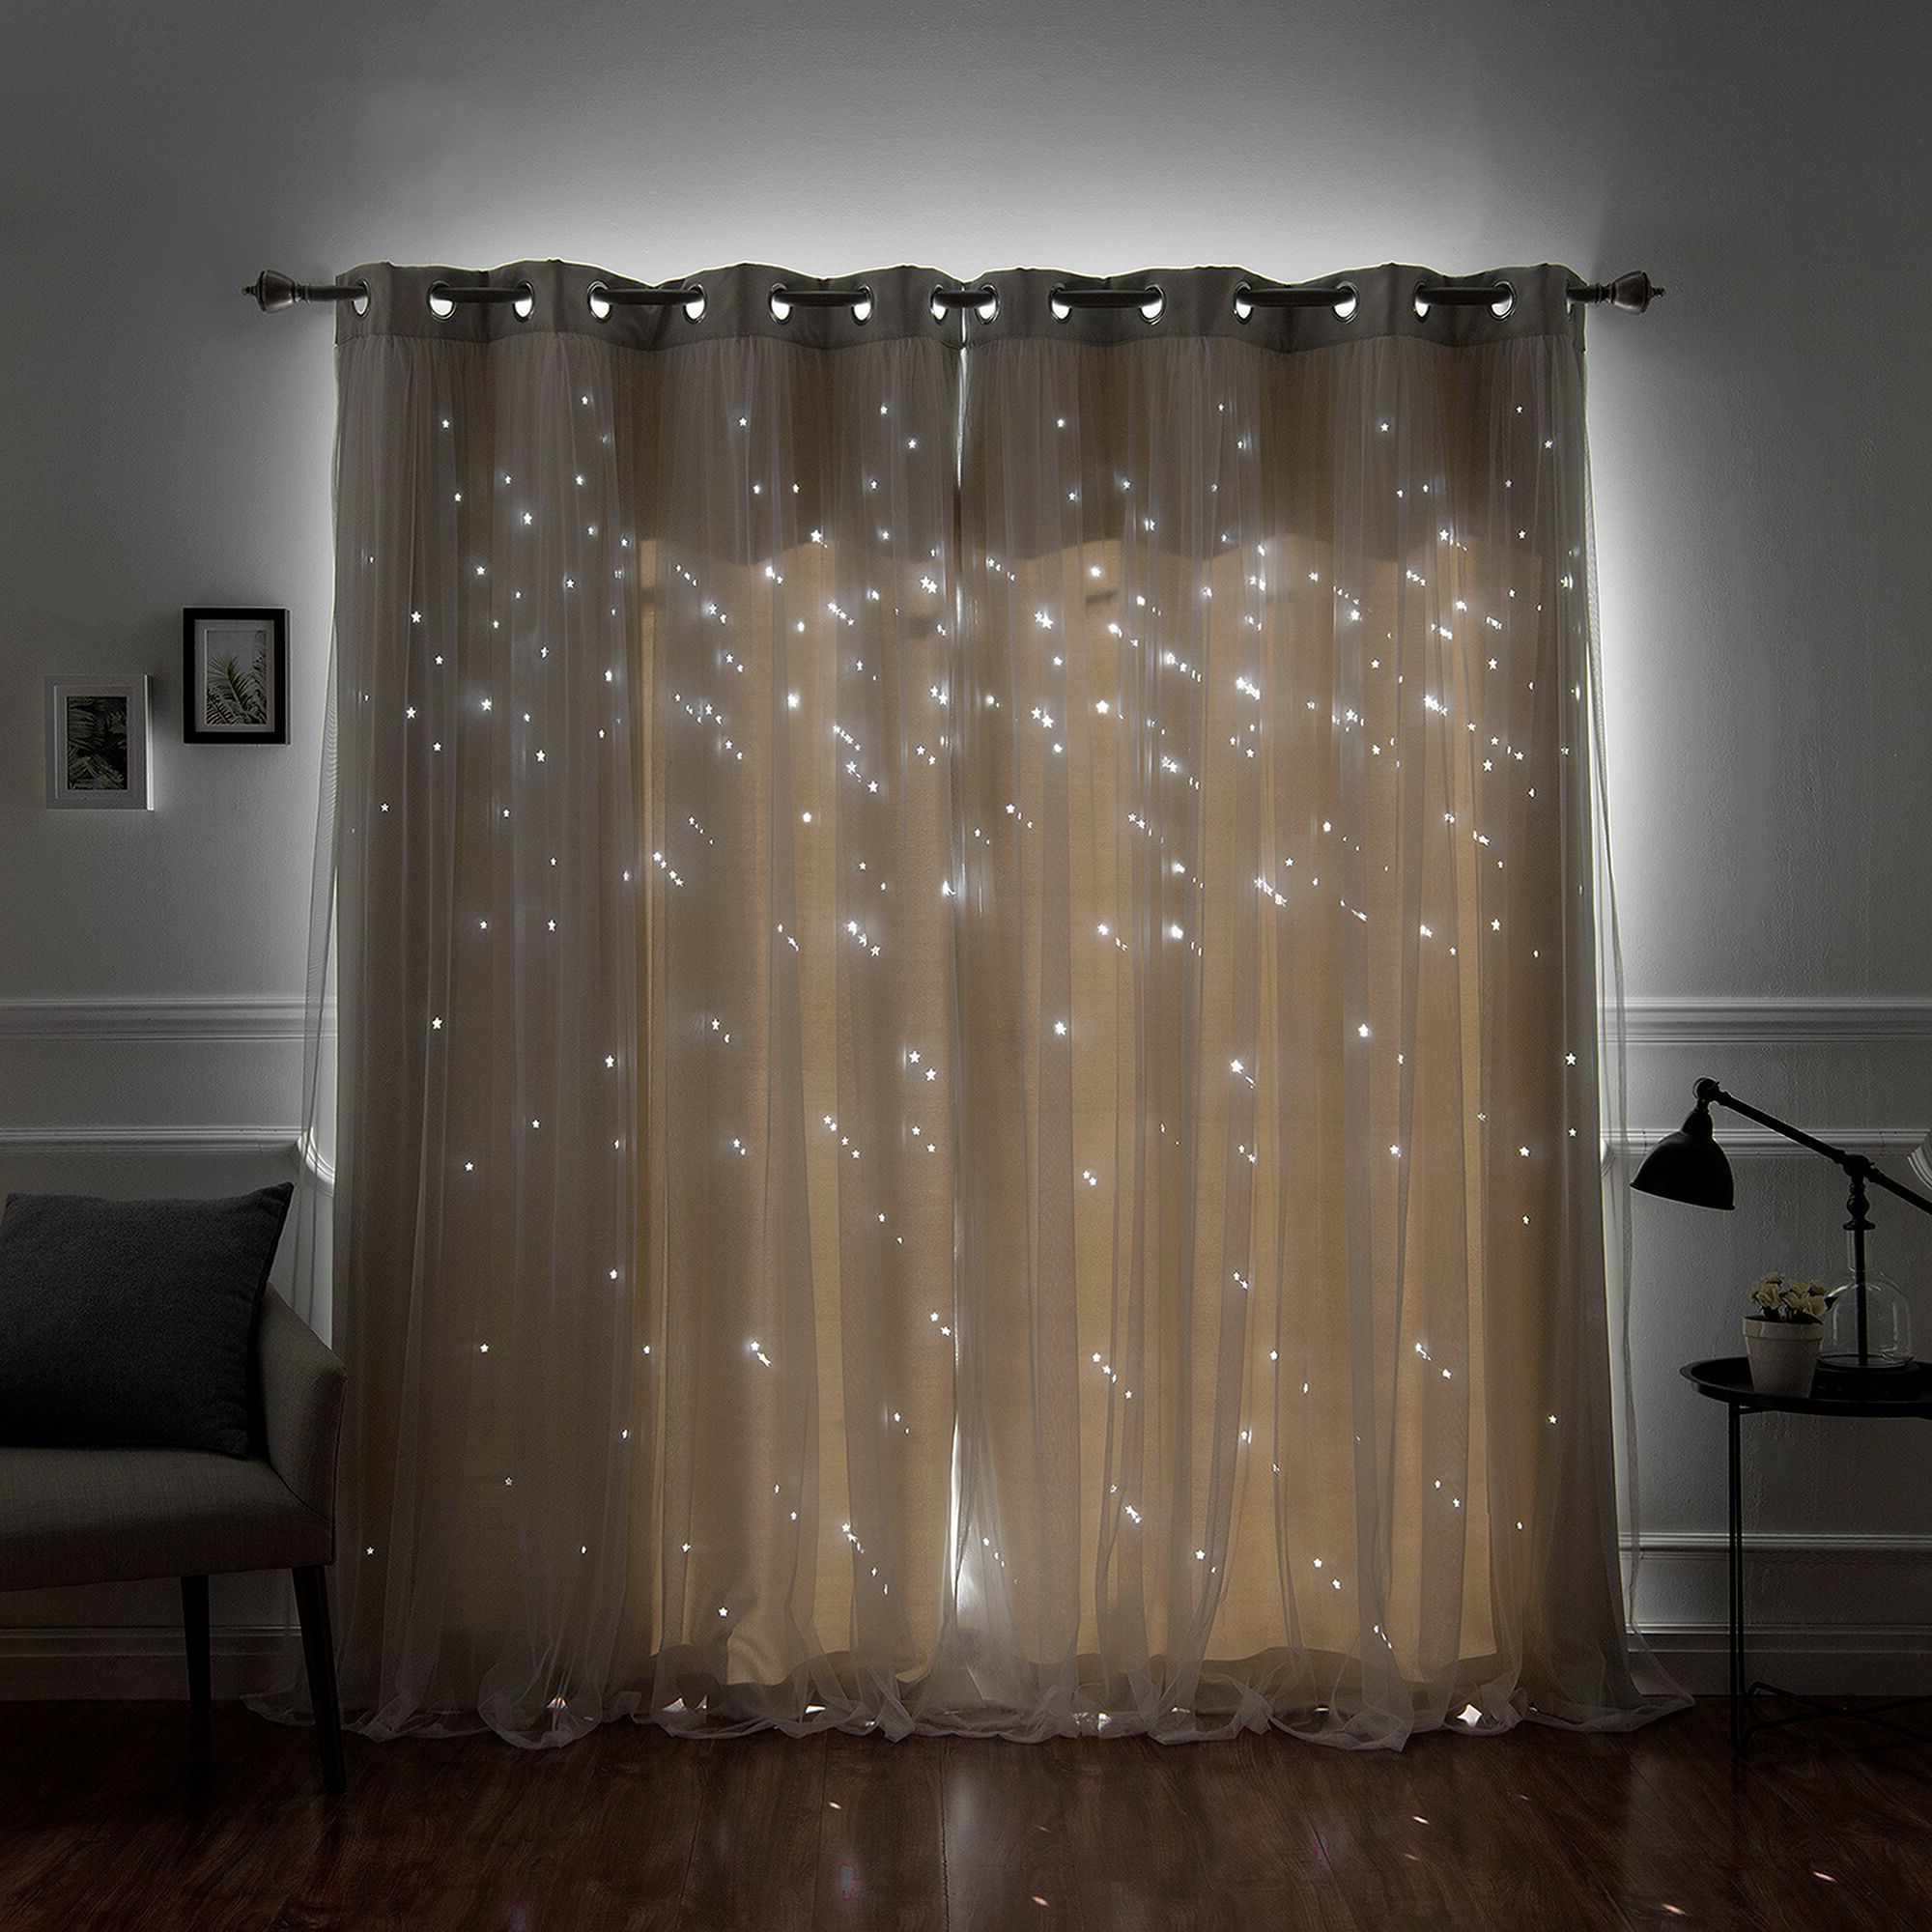 Star Punch Tulle Overlay Blackout Curtain Panel Pairs Intended For Widely Used Aurora Home Star Punch Tulle Overlay Blackout Curtain Panel Pair (View 2 of 20)